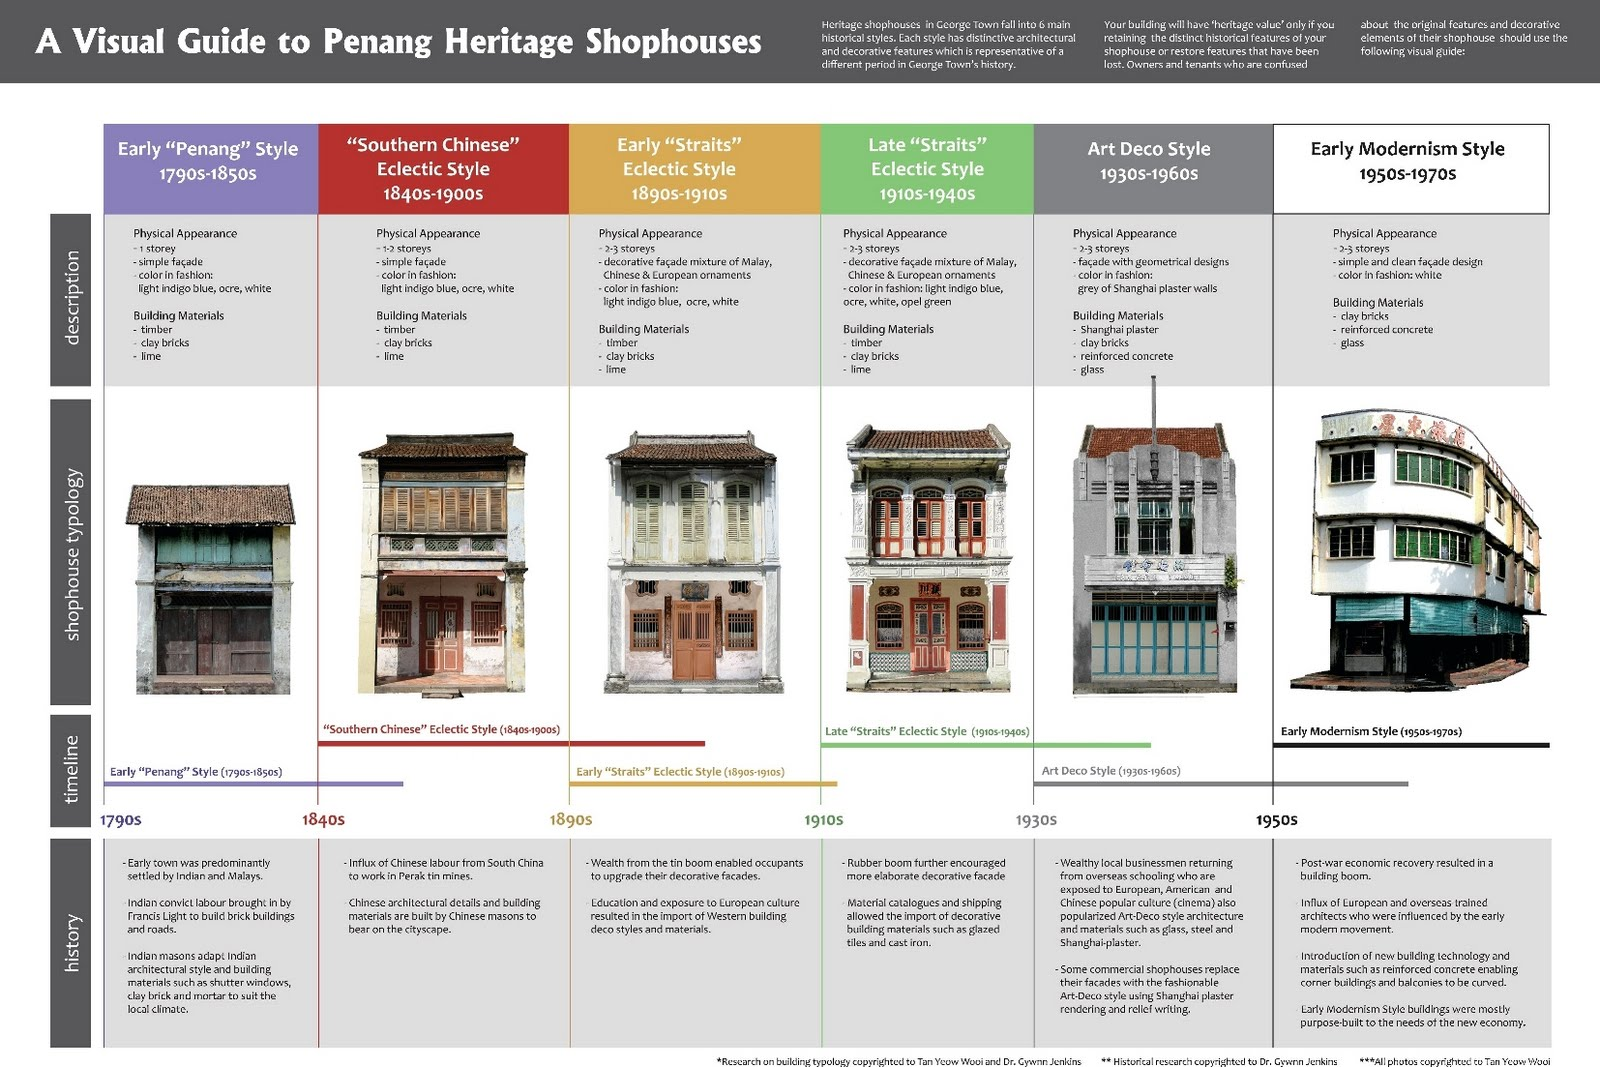 Townhouse center guide to penang shophouse styles for Architectural home styles guide